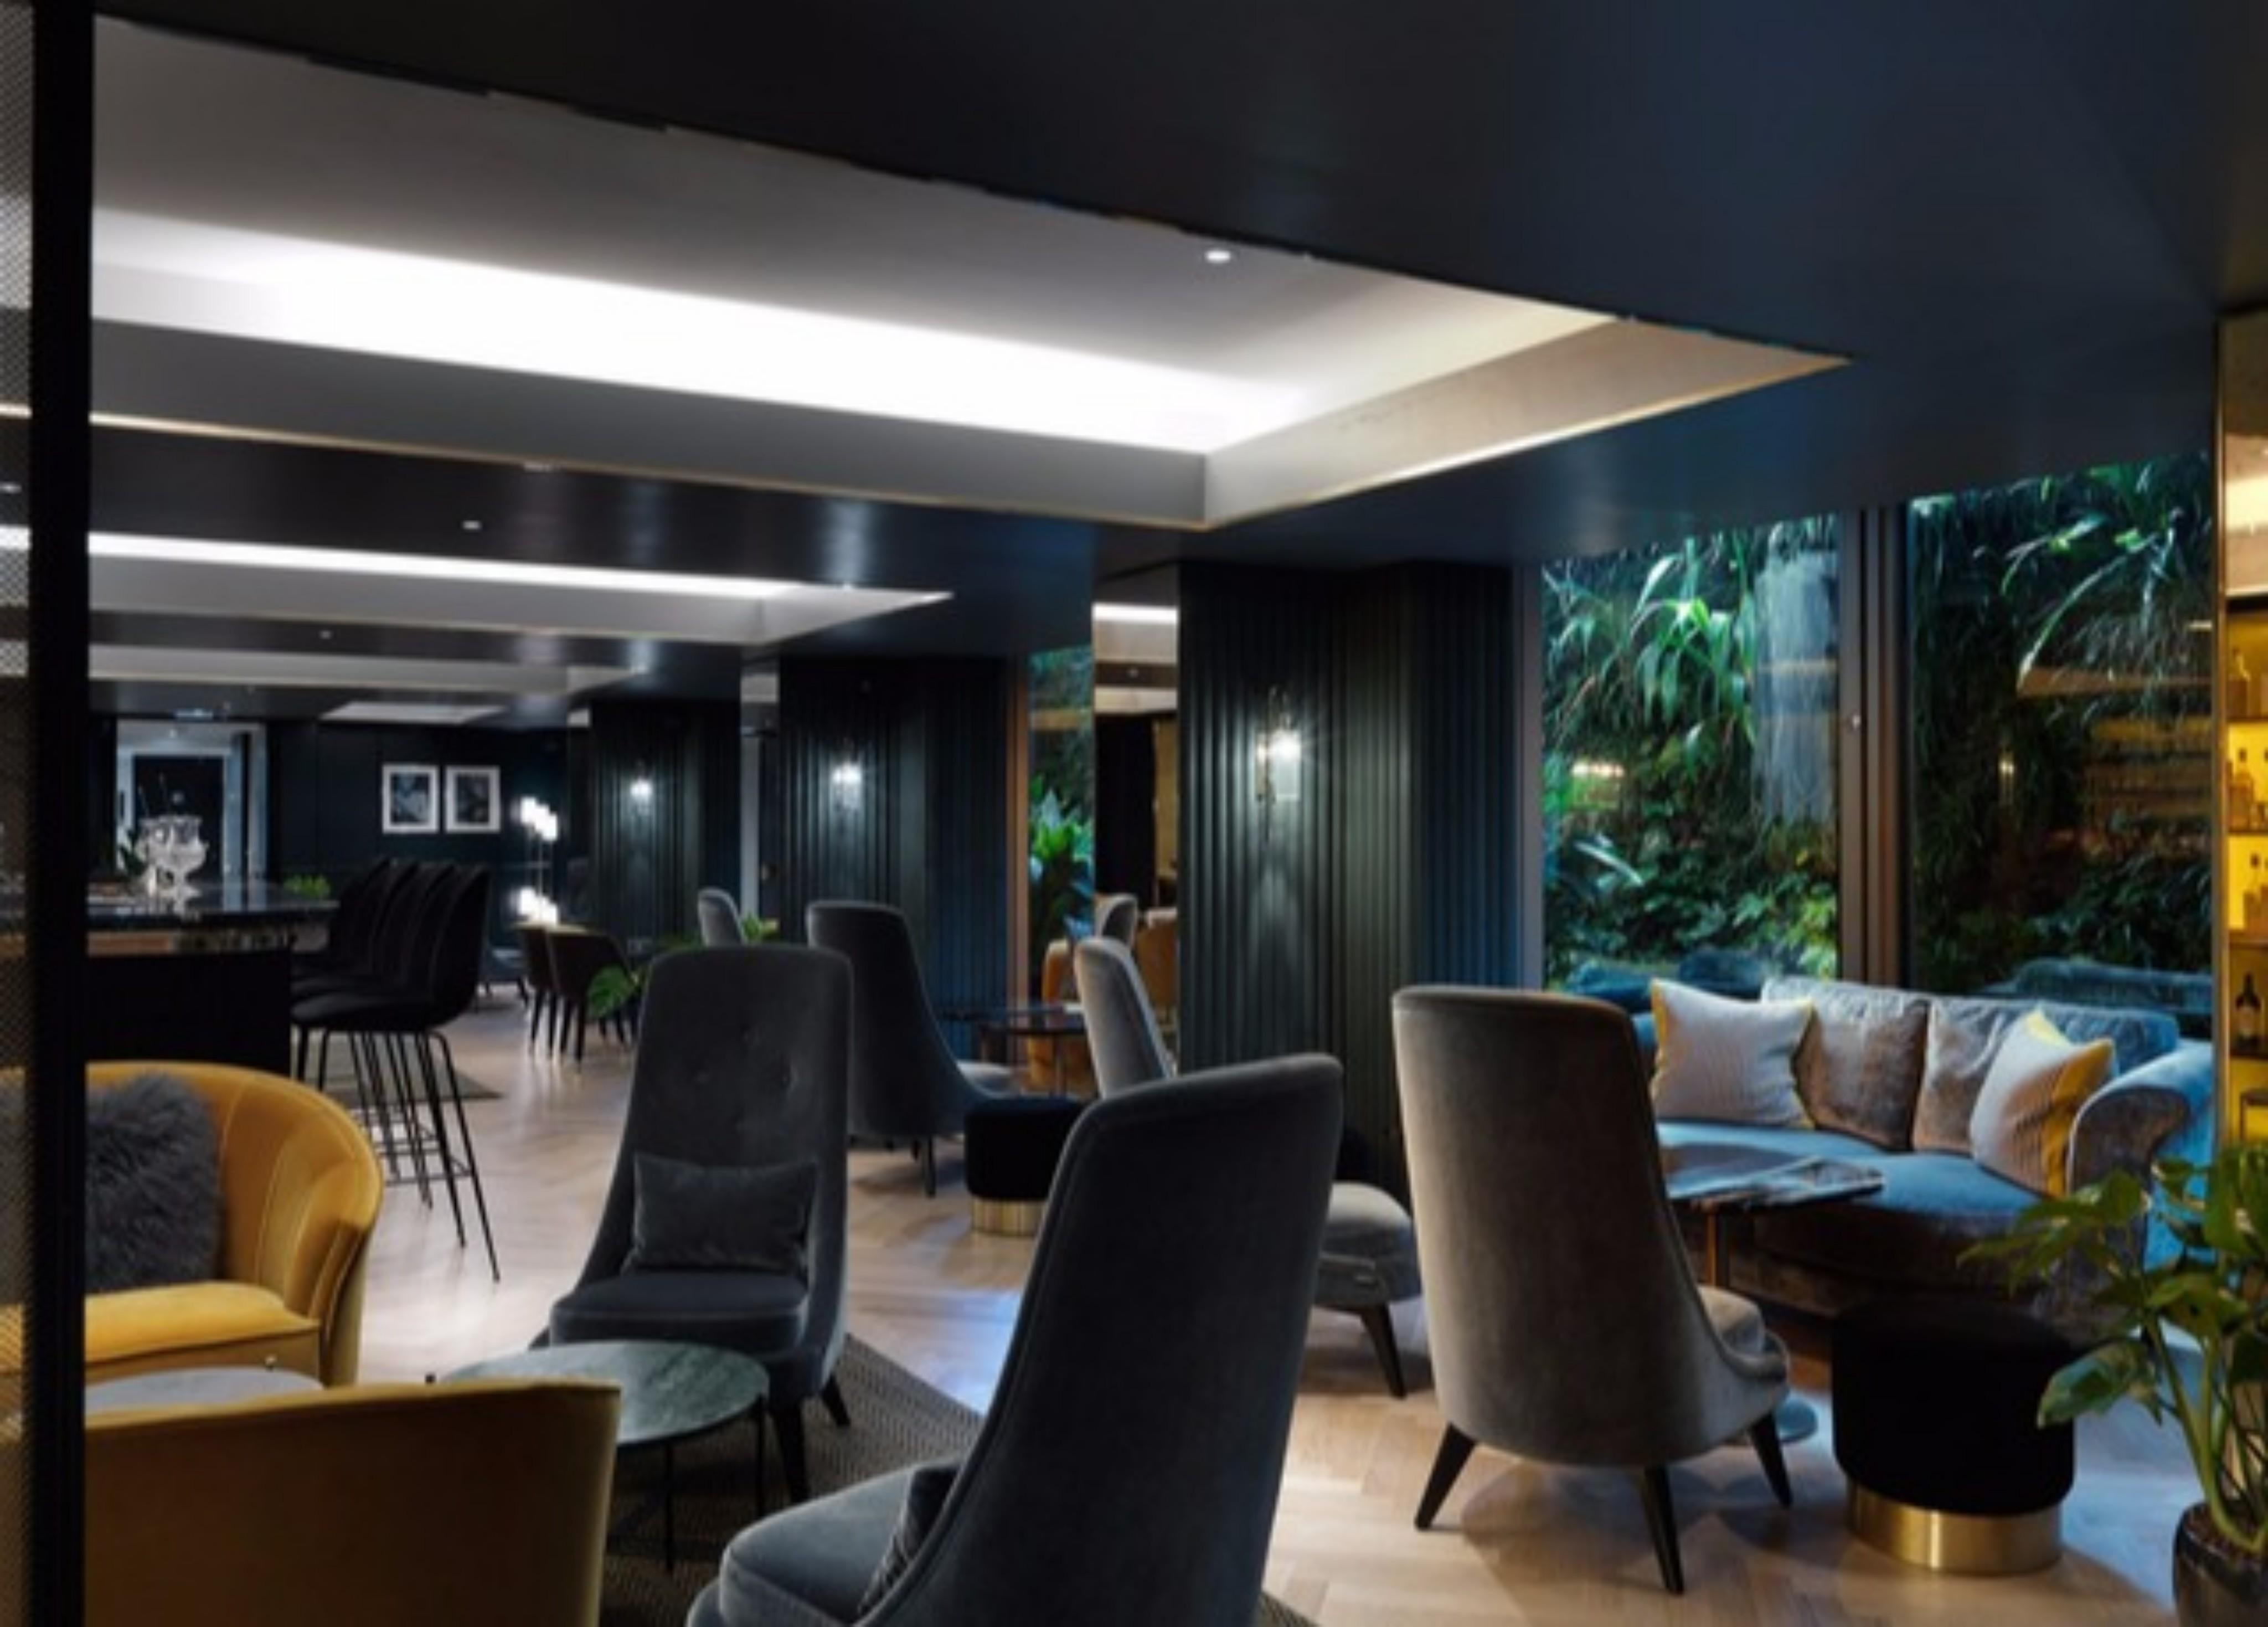 The Athenaeum shortlisted in the finalists at Restaurant and Bar Design Awards The Athenaeum shortlisted in the finalists at Restaurant and Bar Design AwardsThe Athenaeum shortlisted in the finalists at Restaurant and Bar Design Awards 9